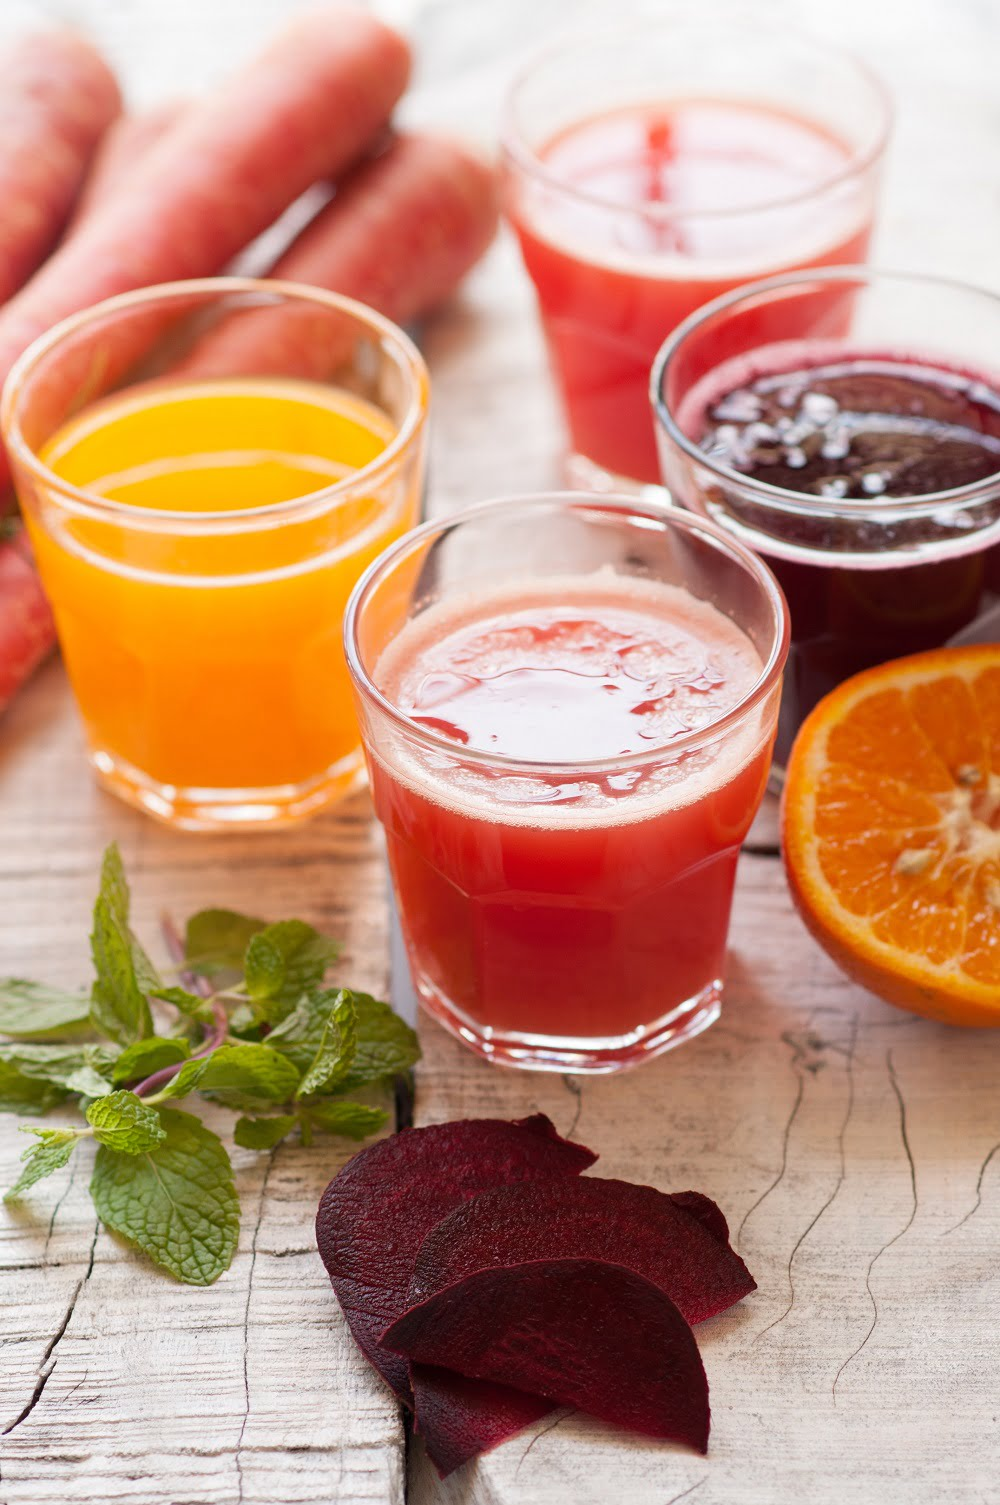 Want to do a juice cleanse? Make sure you check out these dos and donts first! #Juicecleanse #healthy #detox